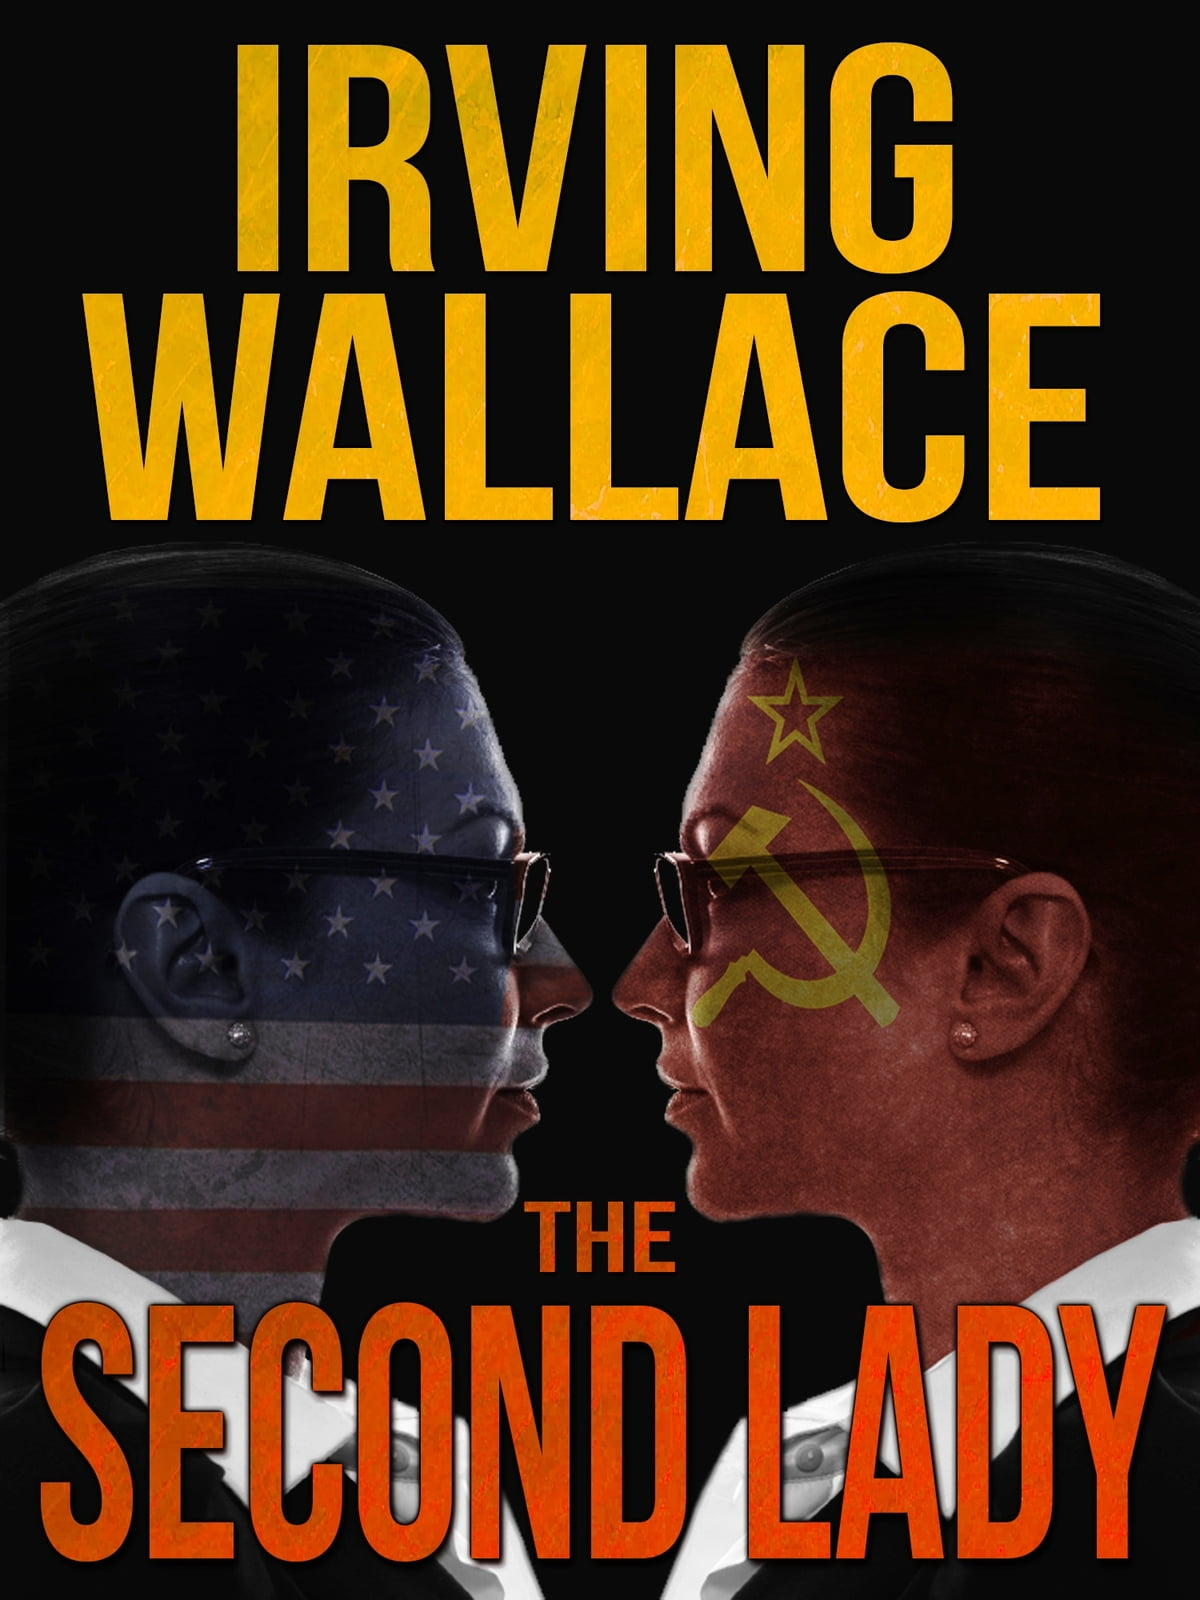 Irving download second free lady wallace ebook the